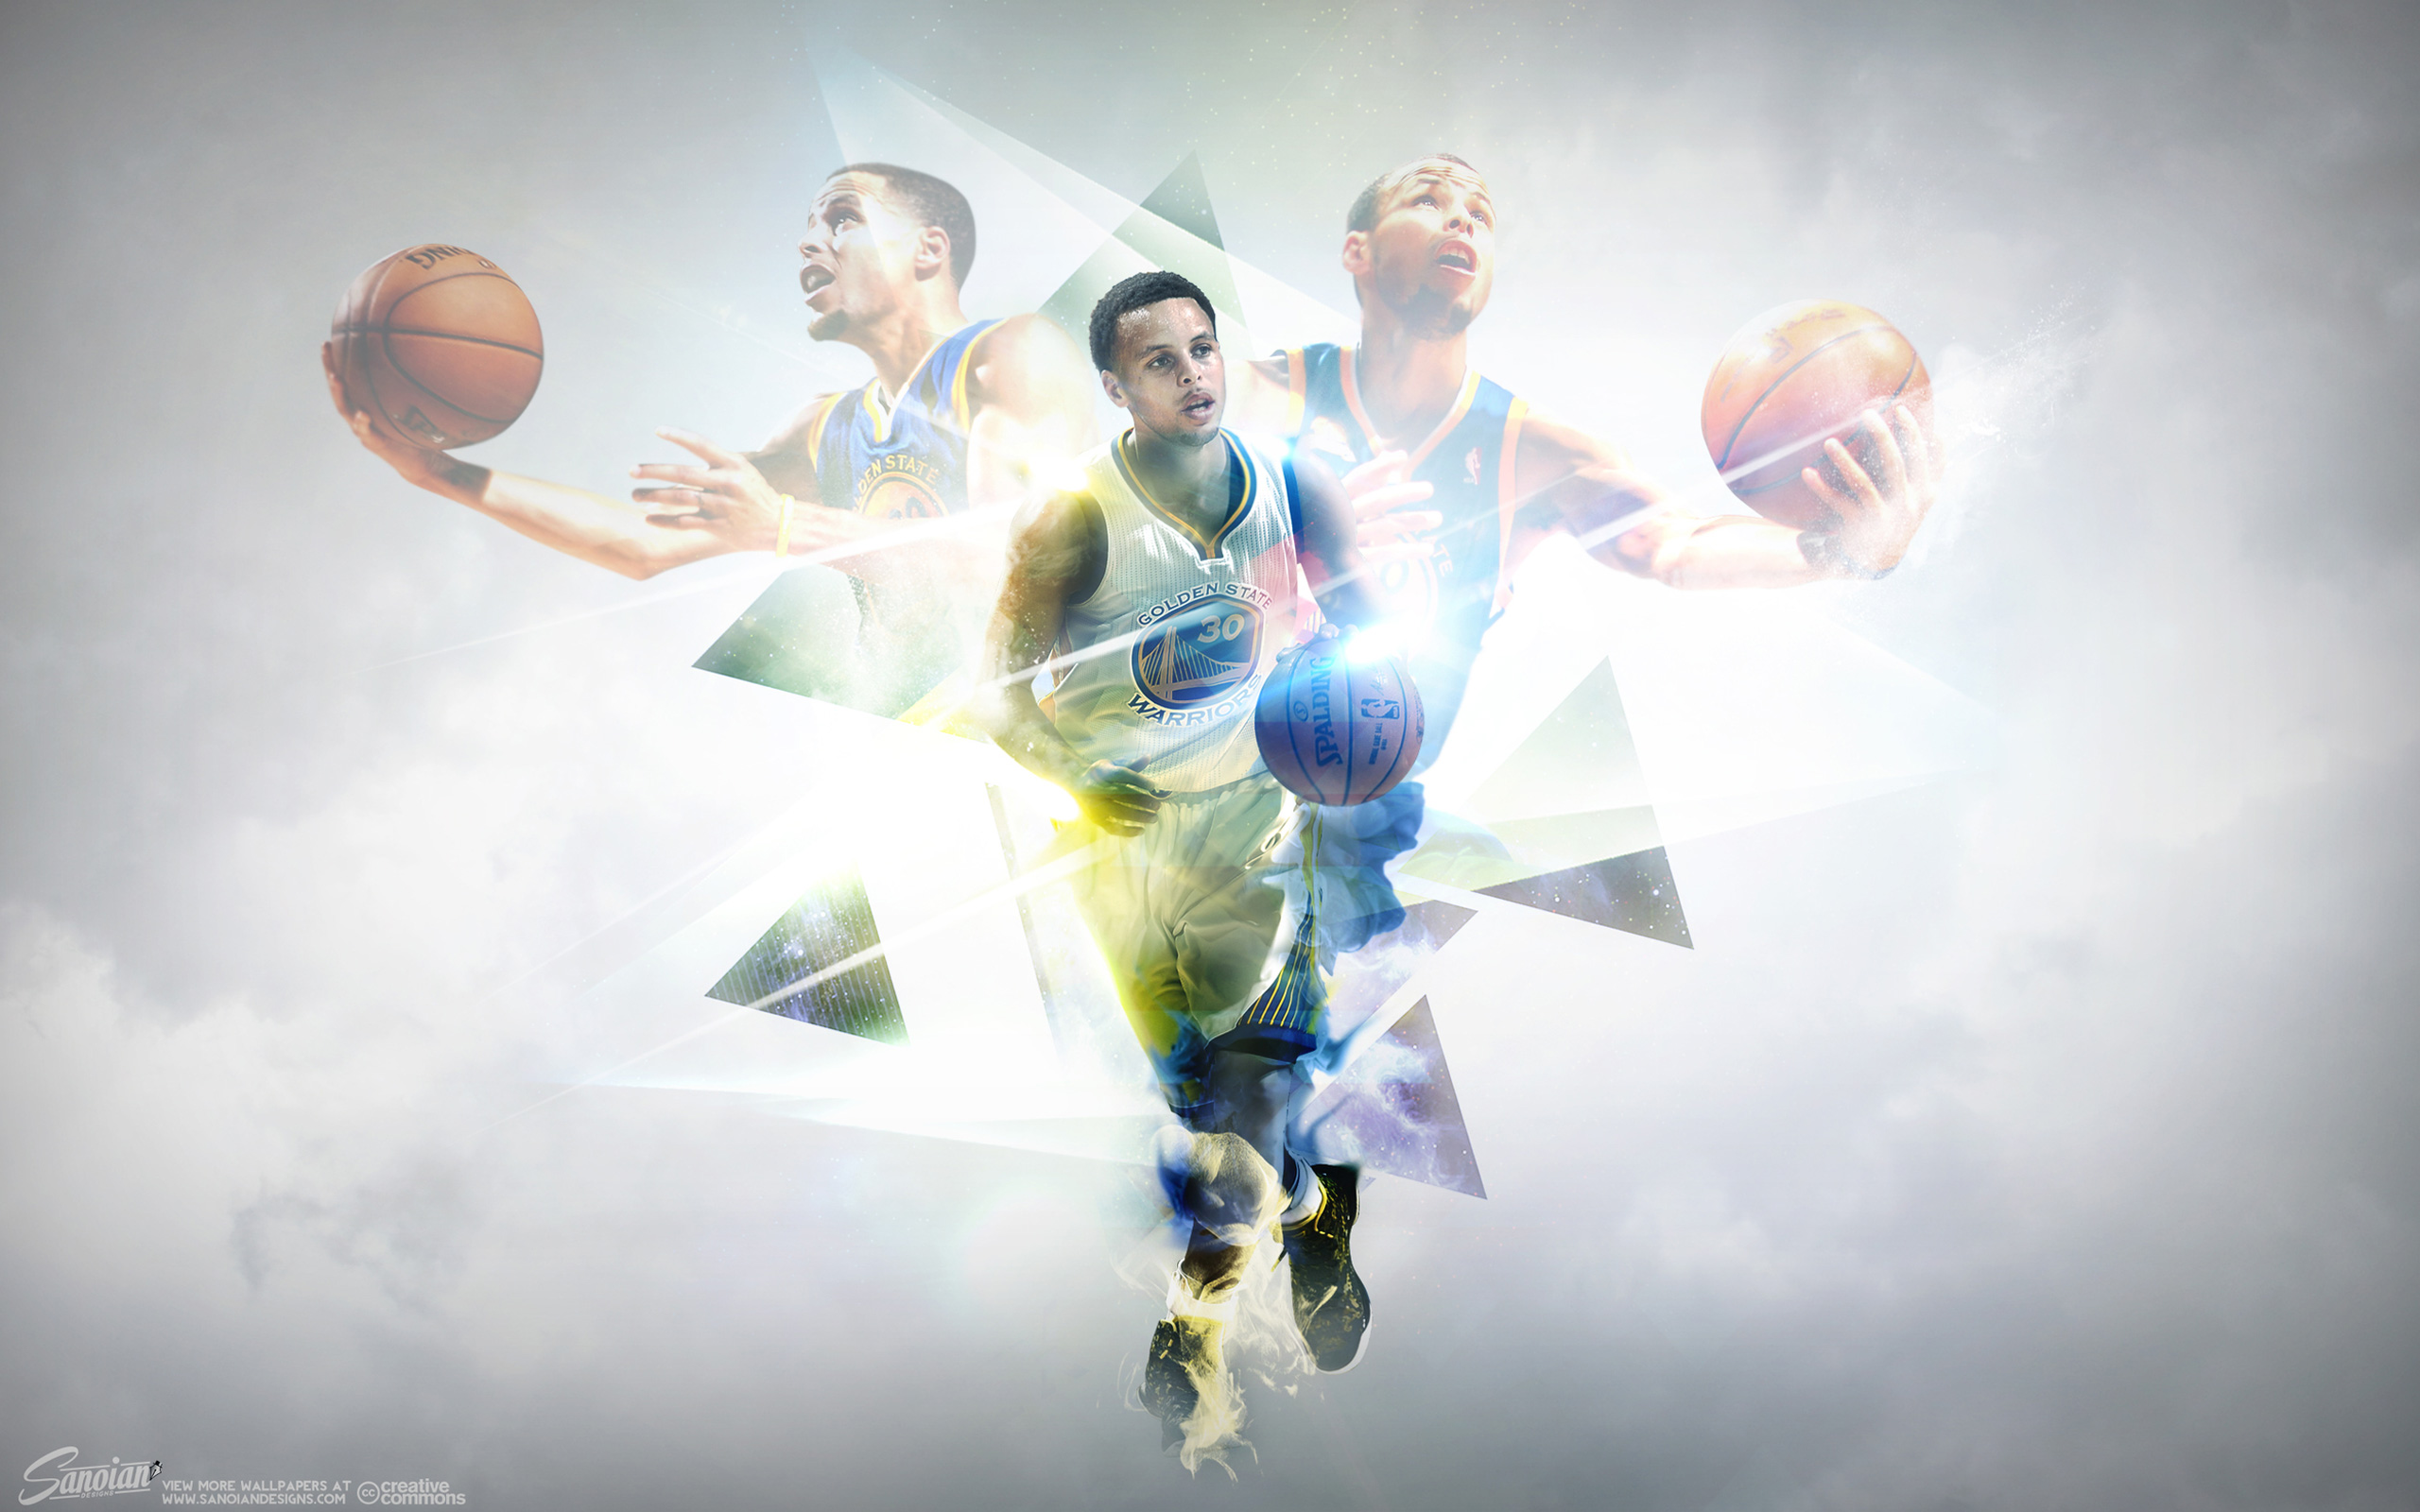 Golden state warriors 2016 wallpaper stephen curry wallpaper warriors